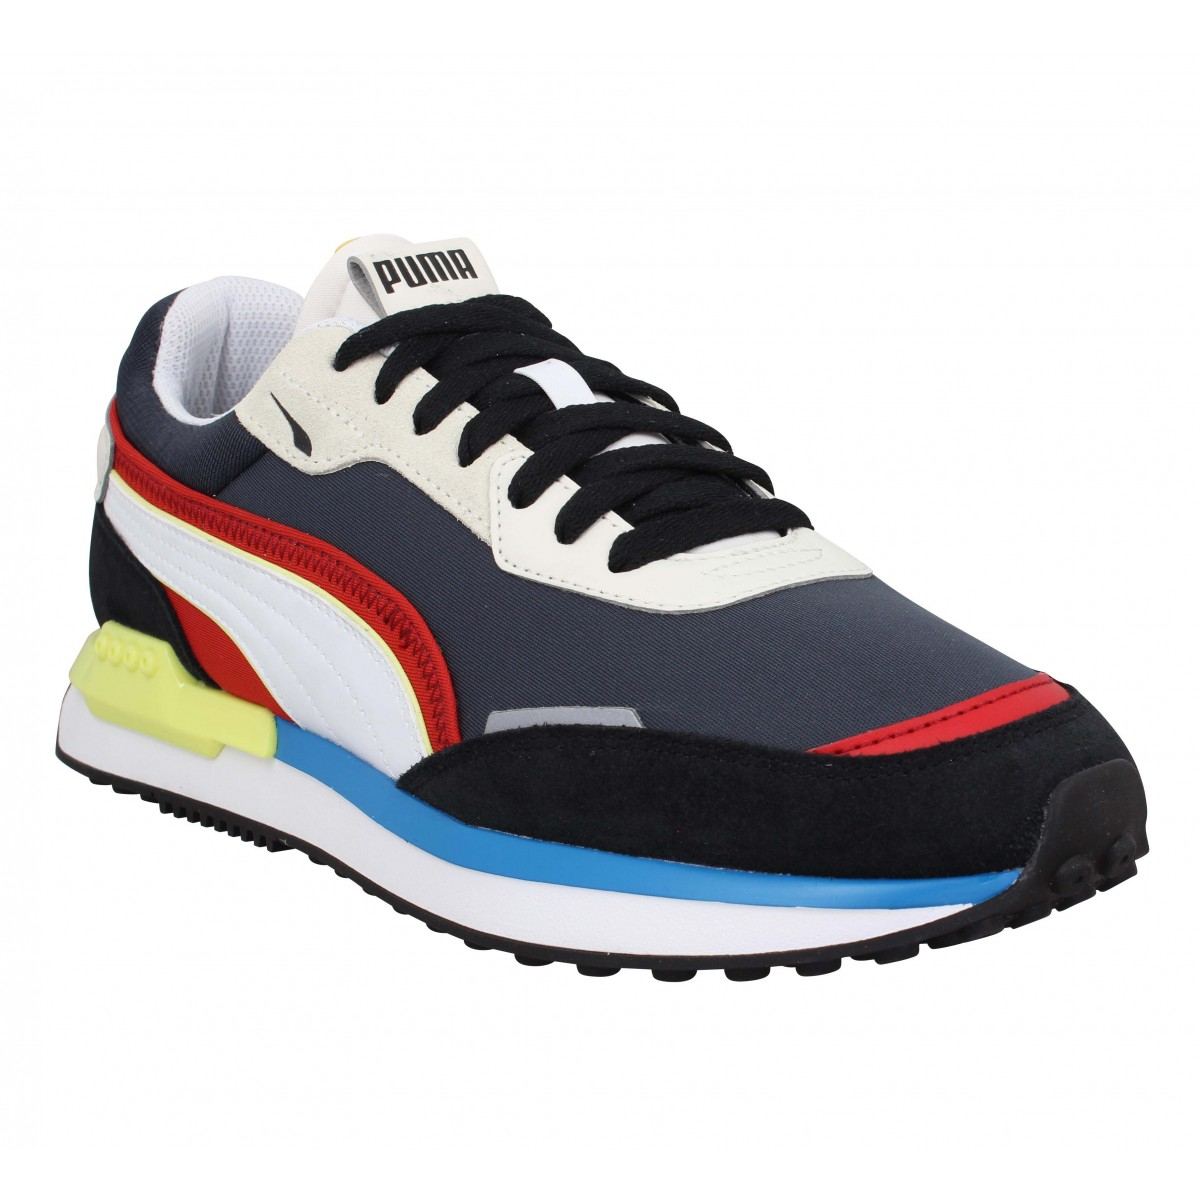 Puma Homme City Rider Velours Toile...